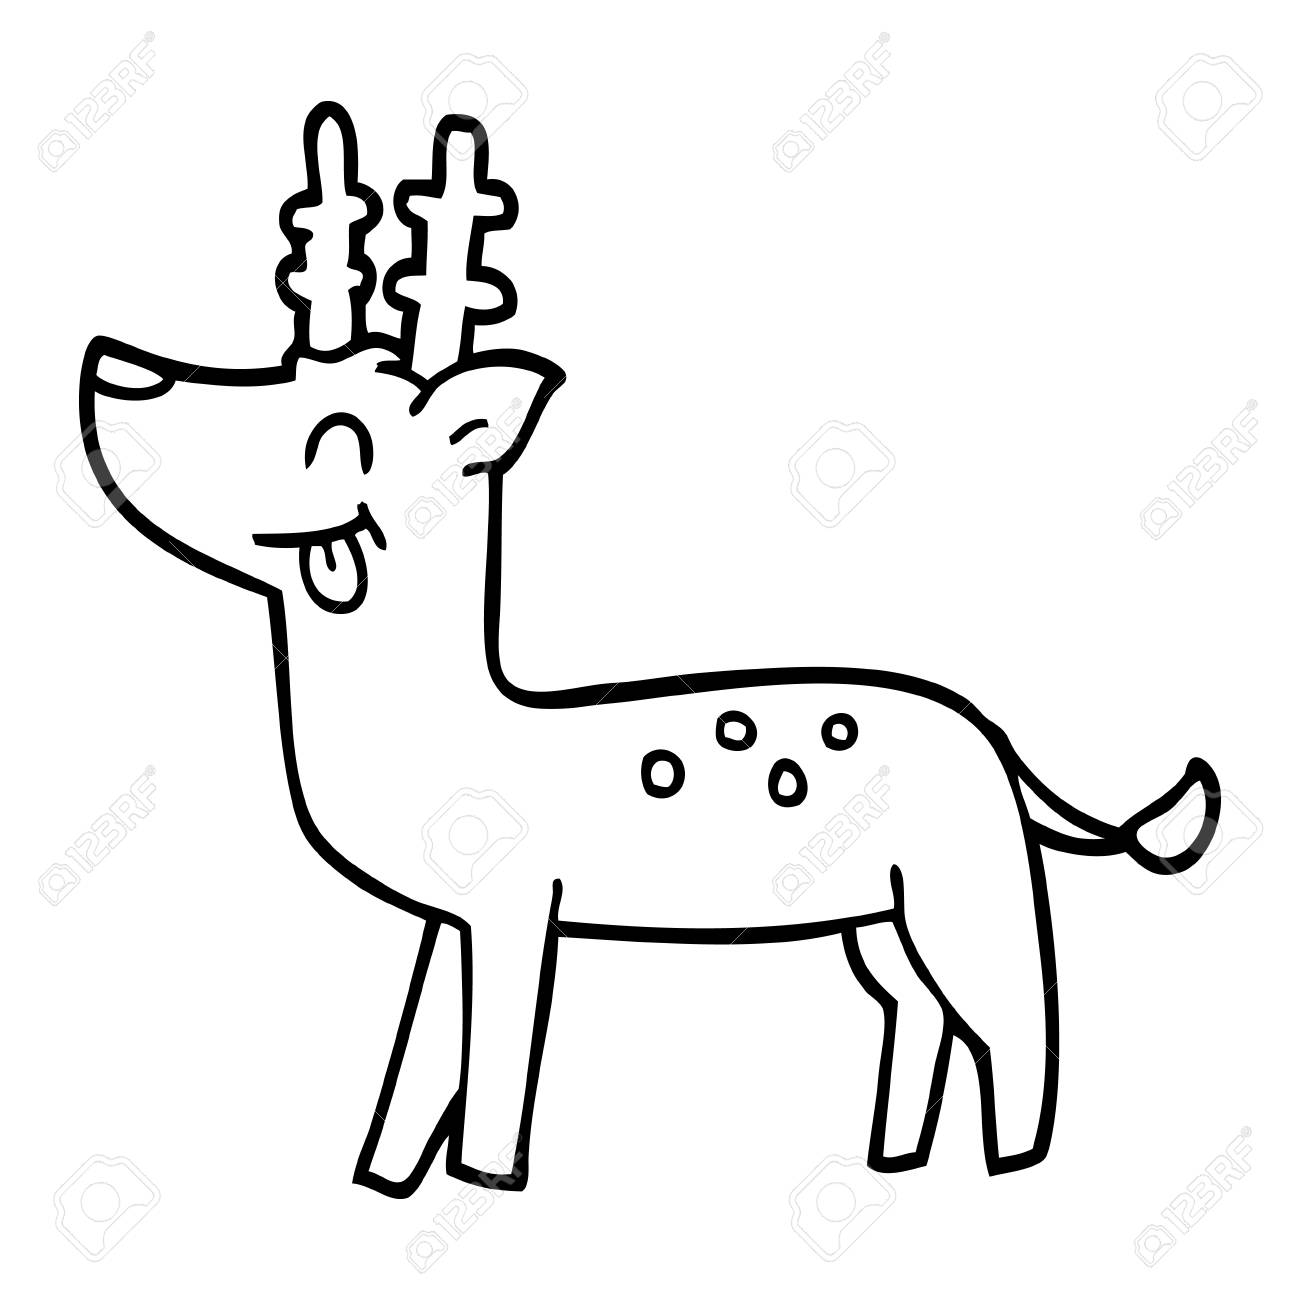 Line Drawing Cartoon Happy Deer Royalty Free Cliparts Vectors And